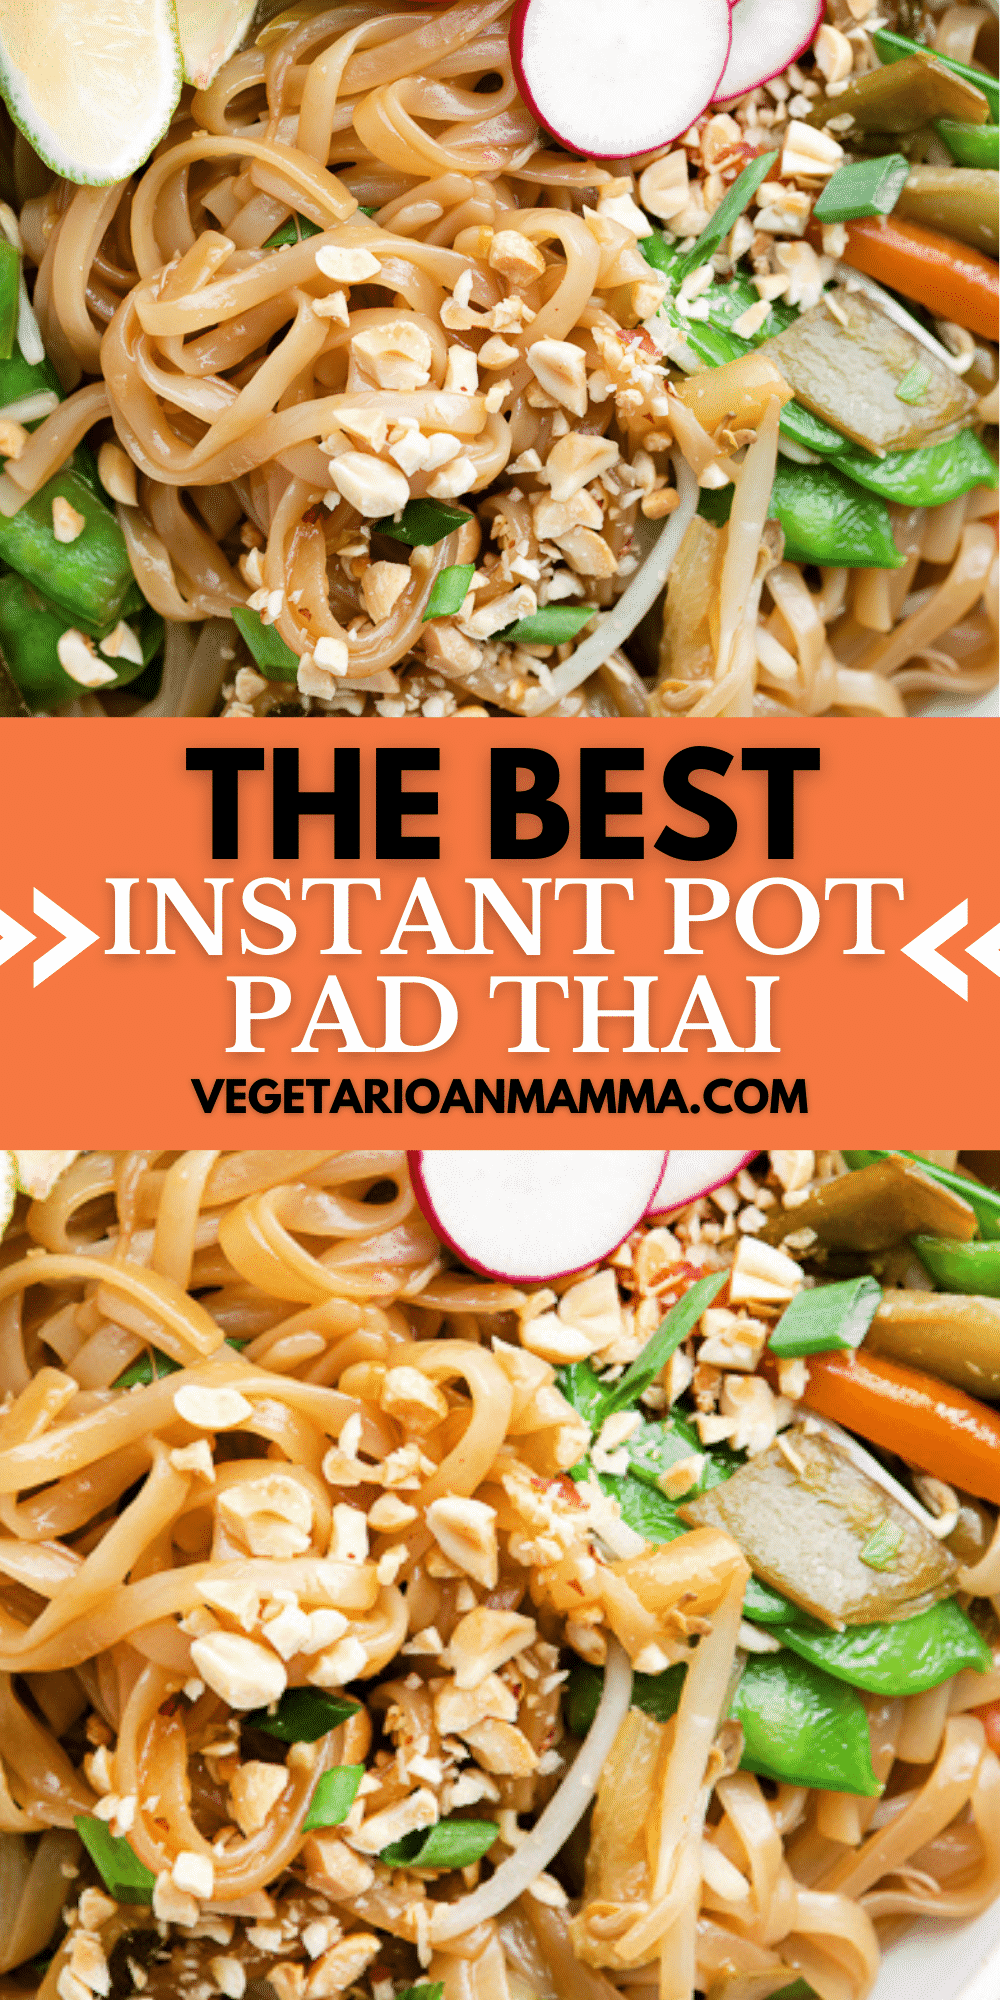 Make this wonderfully seasoned Pad Thai dish, packed with vegetables and noodles, in the Instant Pot for a simple, fast, homemade meal that's better than takeout. #instantpot #padthai